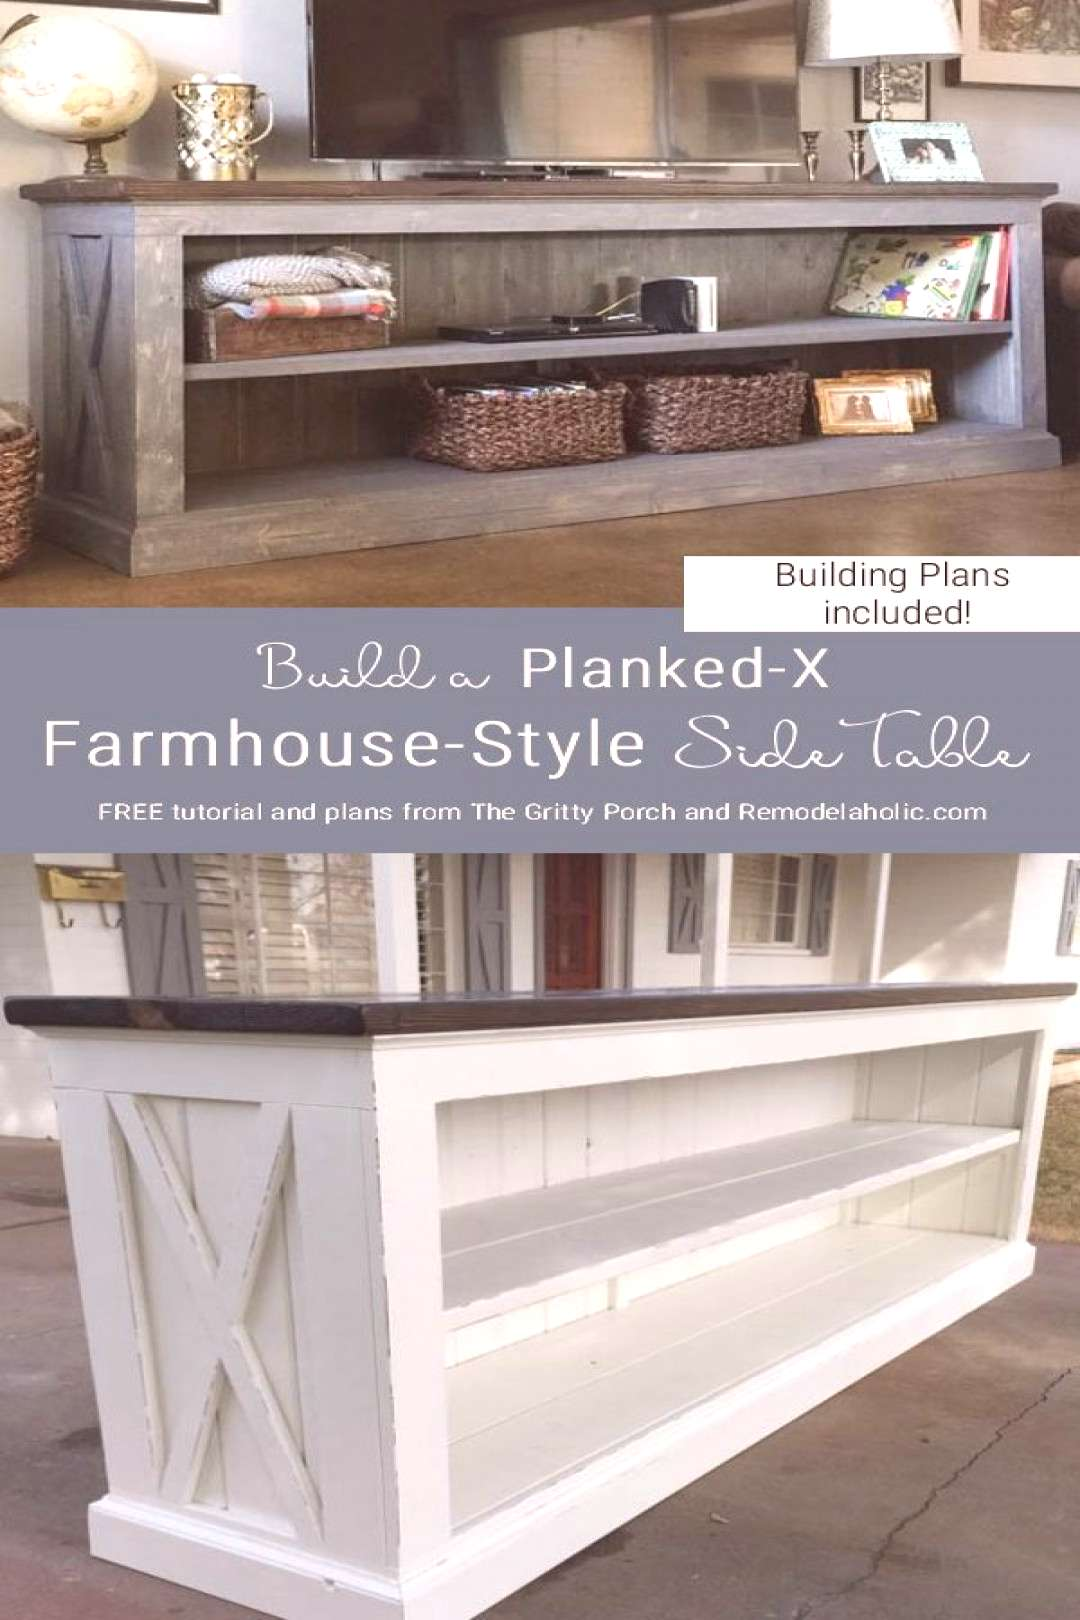 Free Building Plans For Farmhouse Style Sideboard Table, Tv Console Table, By The Gritty Porch Feat